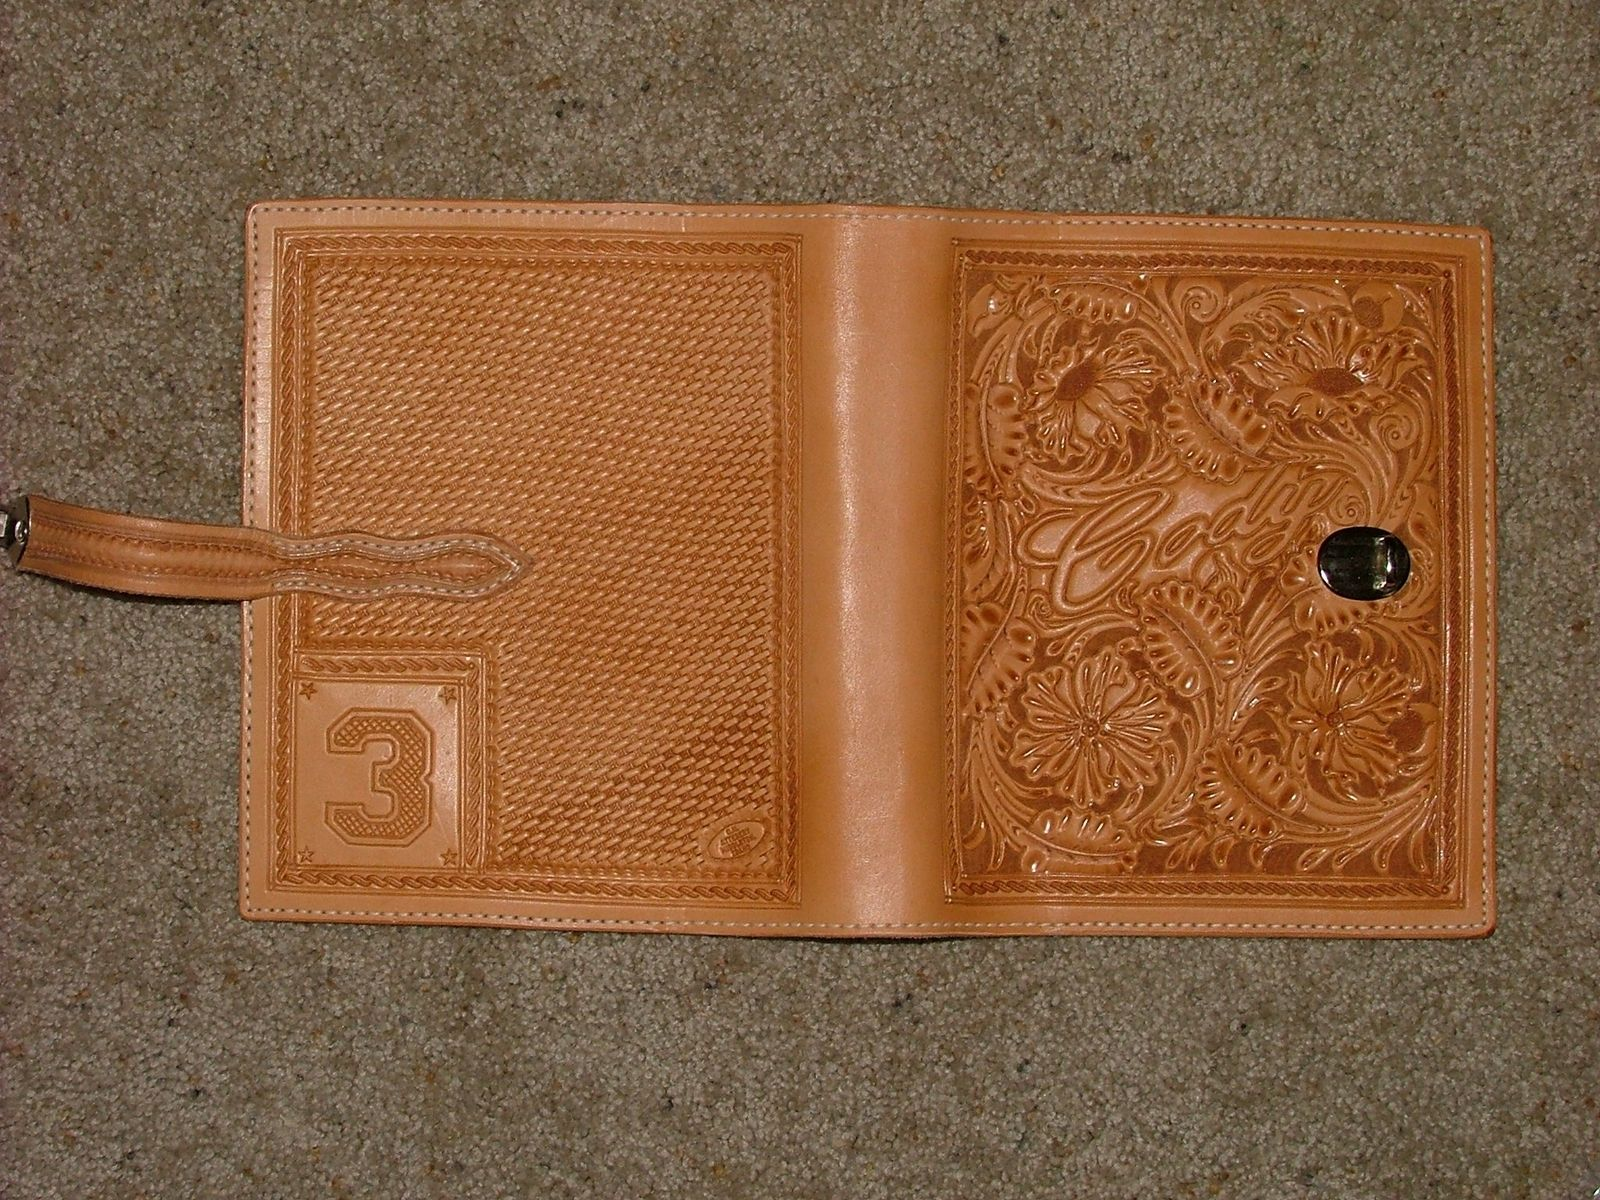 Custom Carved Leather Day Planner By Deanas Designs CustomMadecom - Custom daily planner